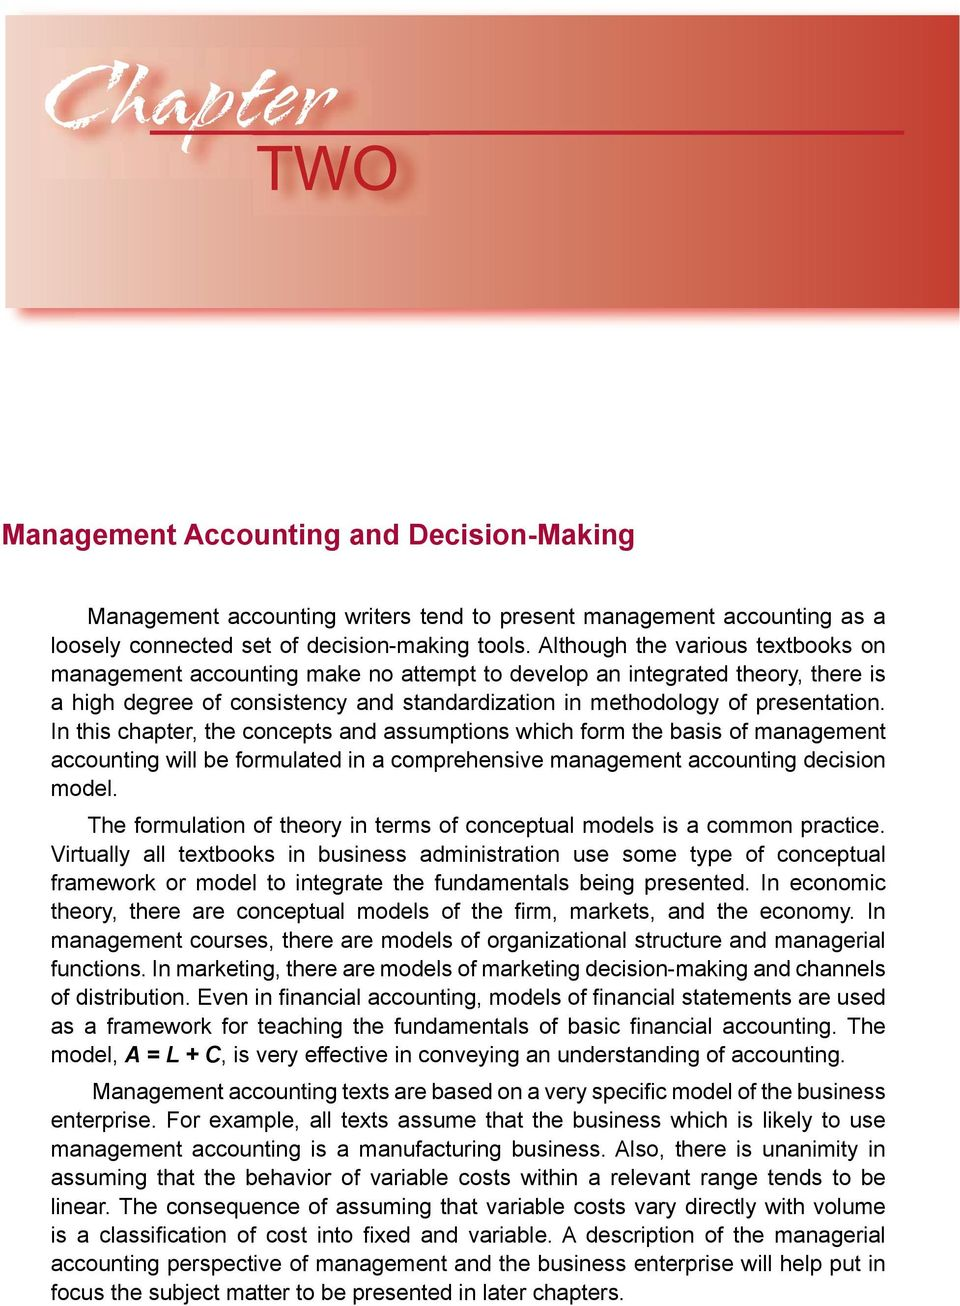 In this chapter, the concepts and assumptions which form the basis of management accounting will be formulated in a comprehensive management accounting decision model.